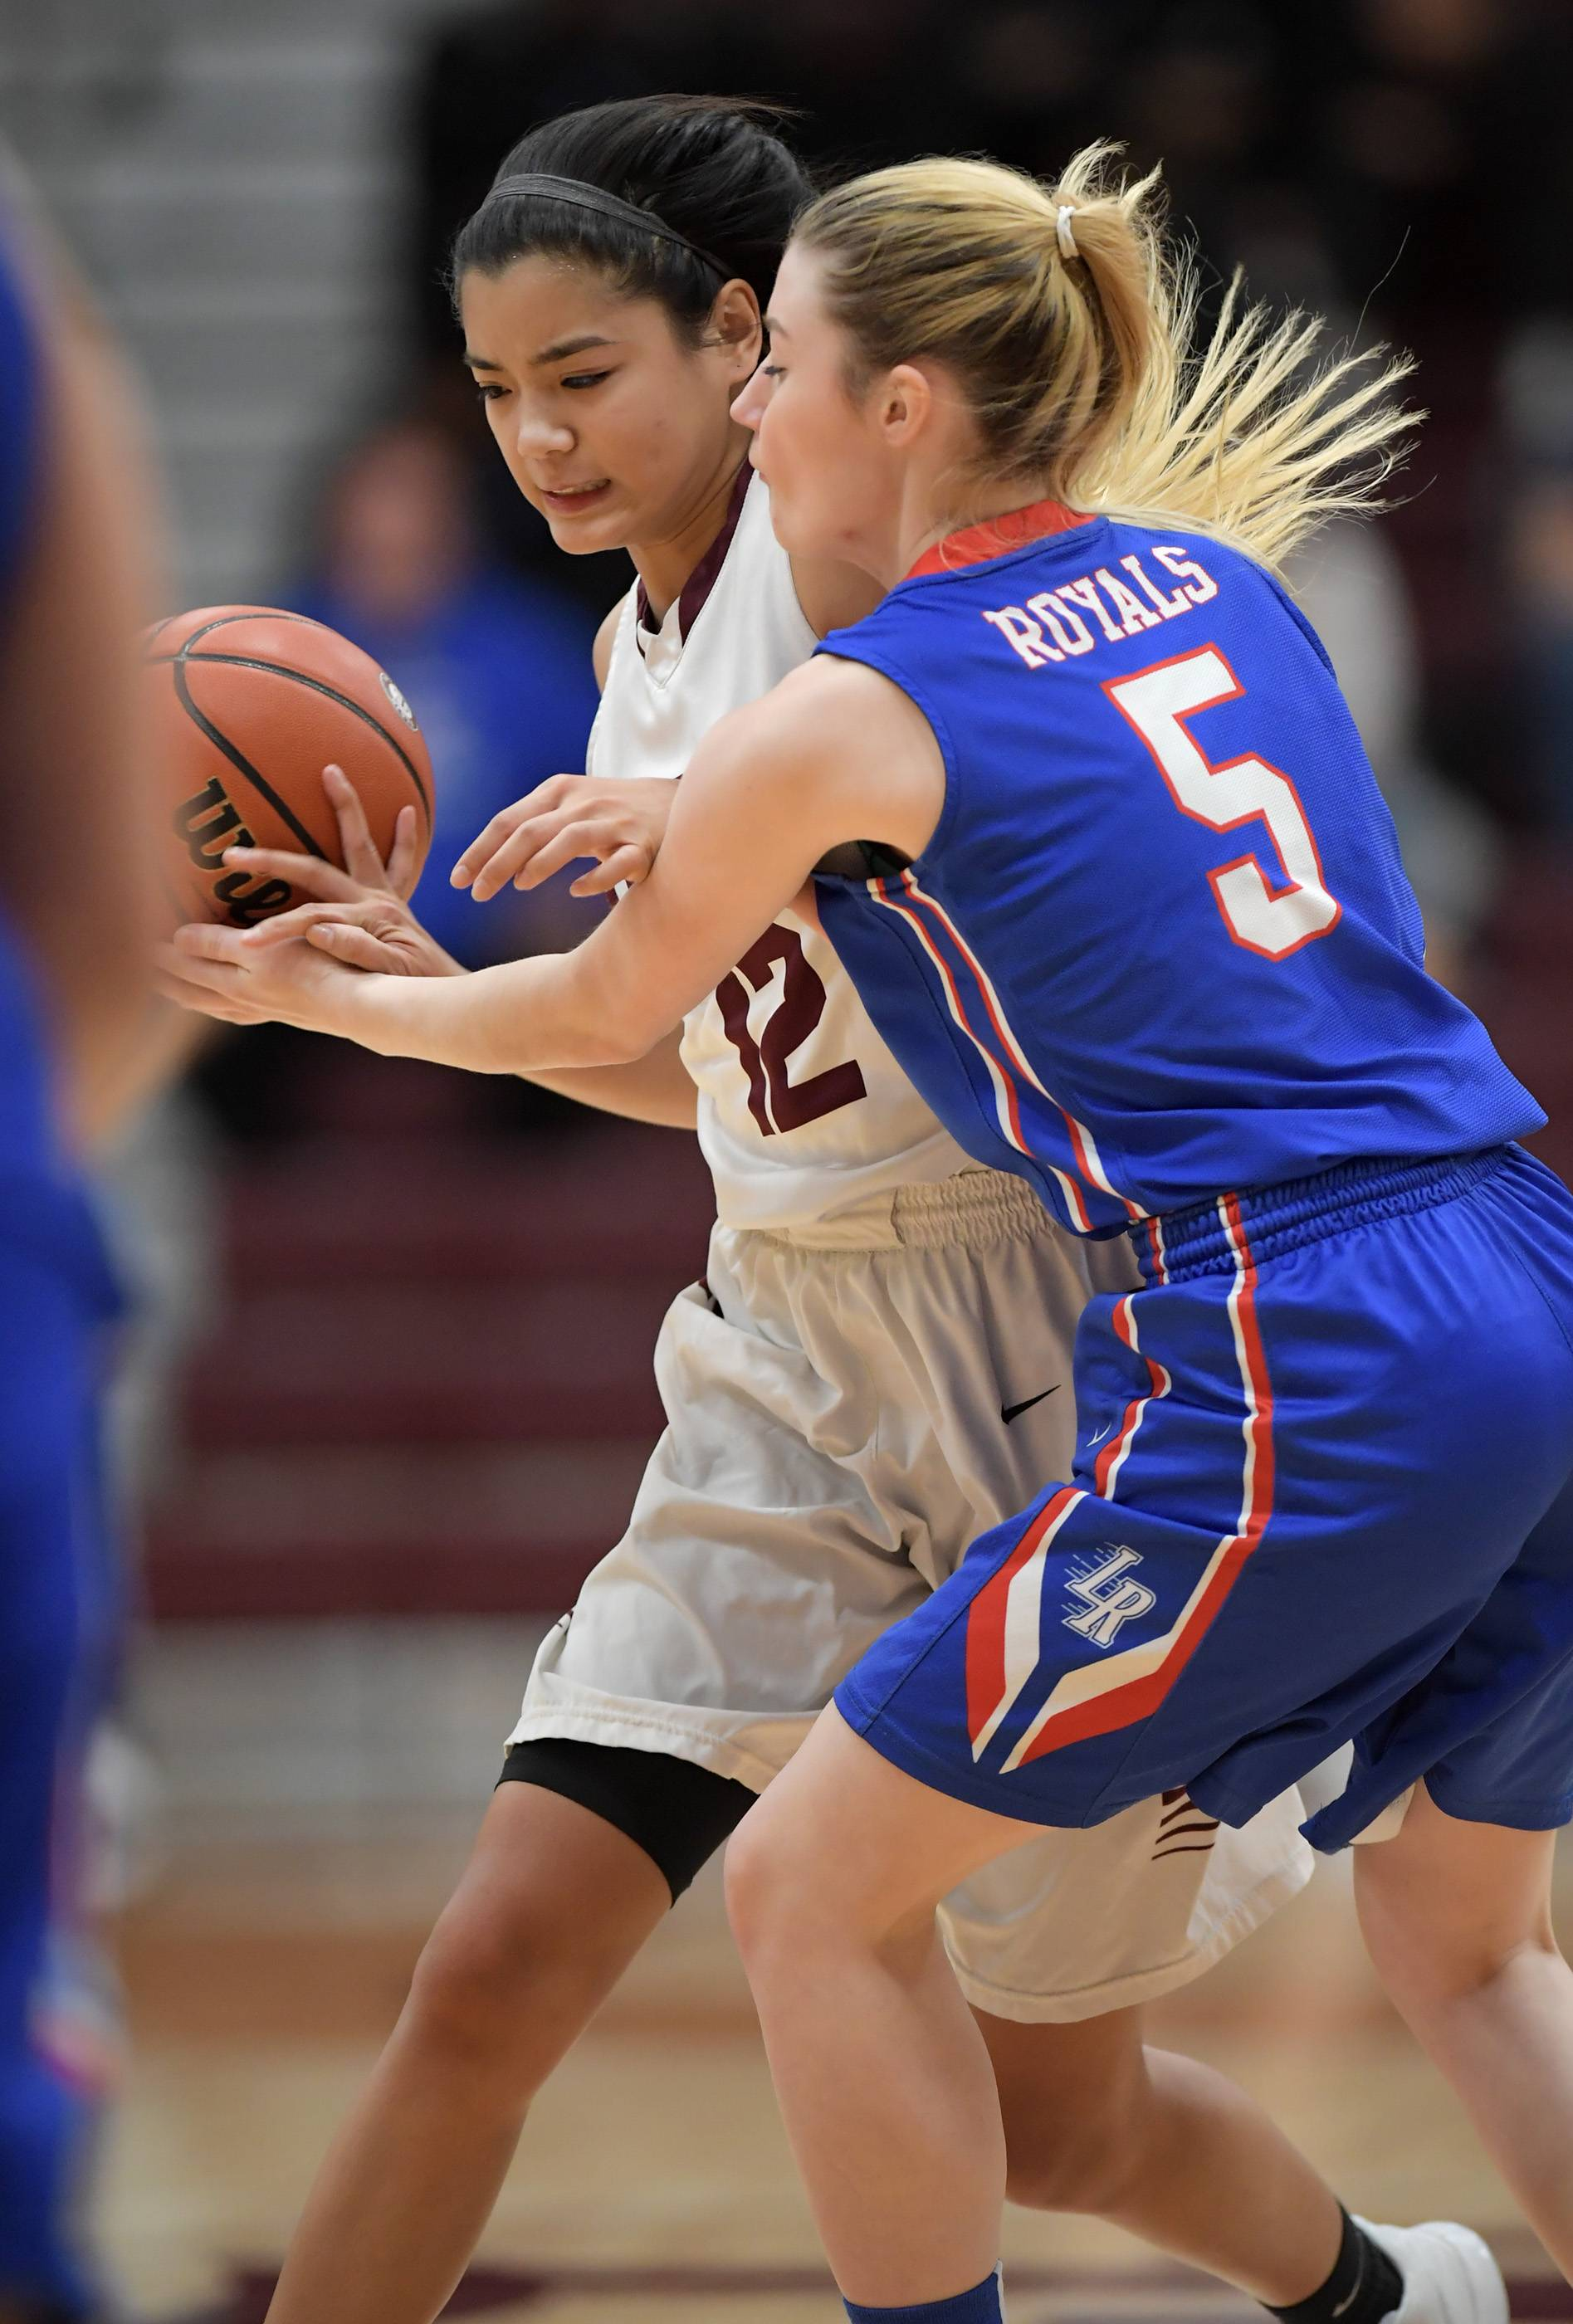 Larkin's Amber Allen forces Elgin's Raechel Untalan into a turnover Tuesday at Chesbrough Field House at Elgin High School.